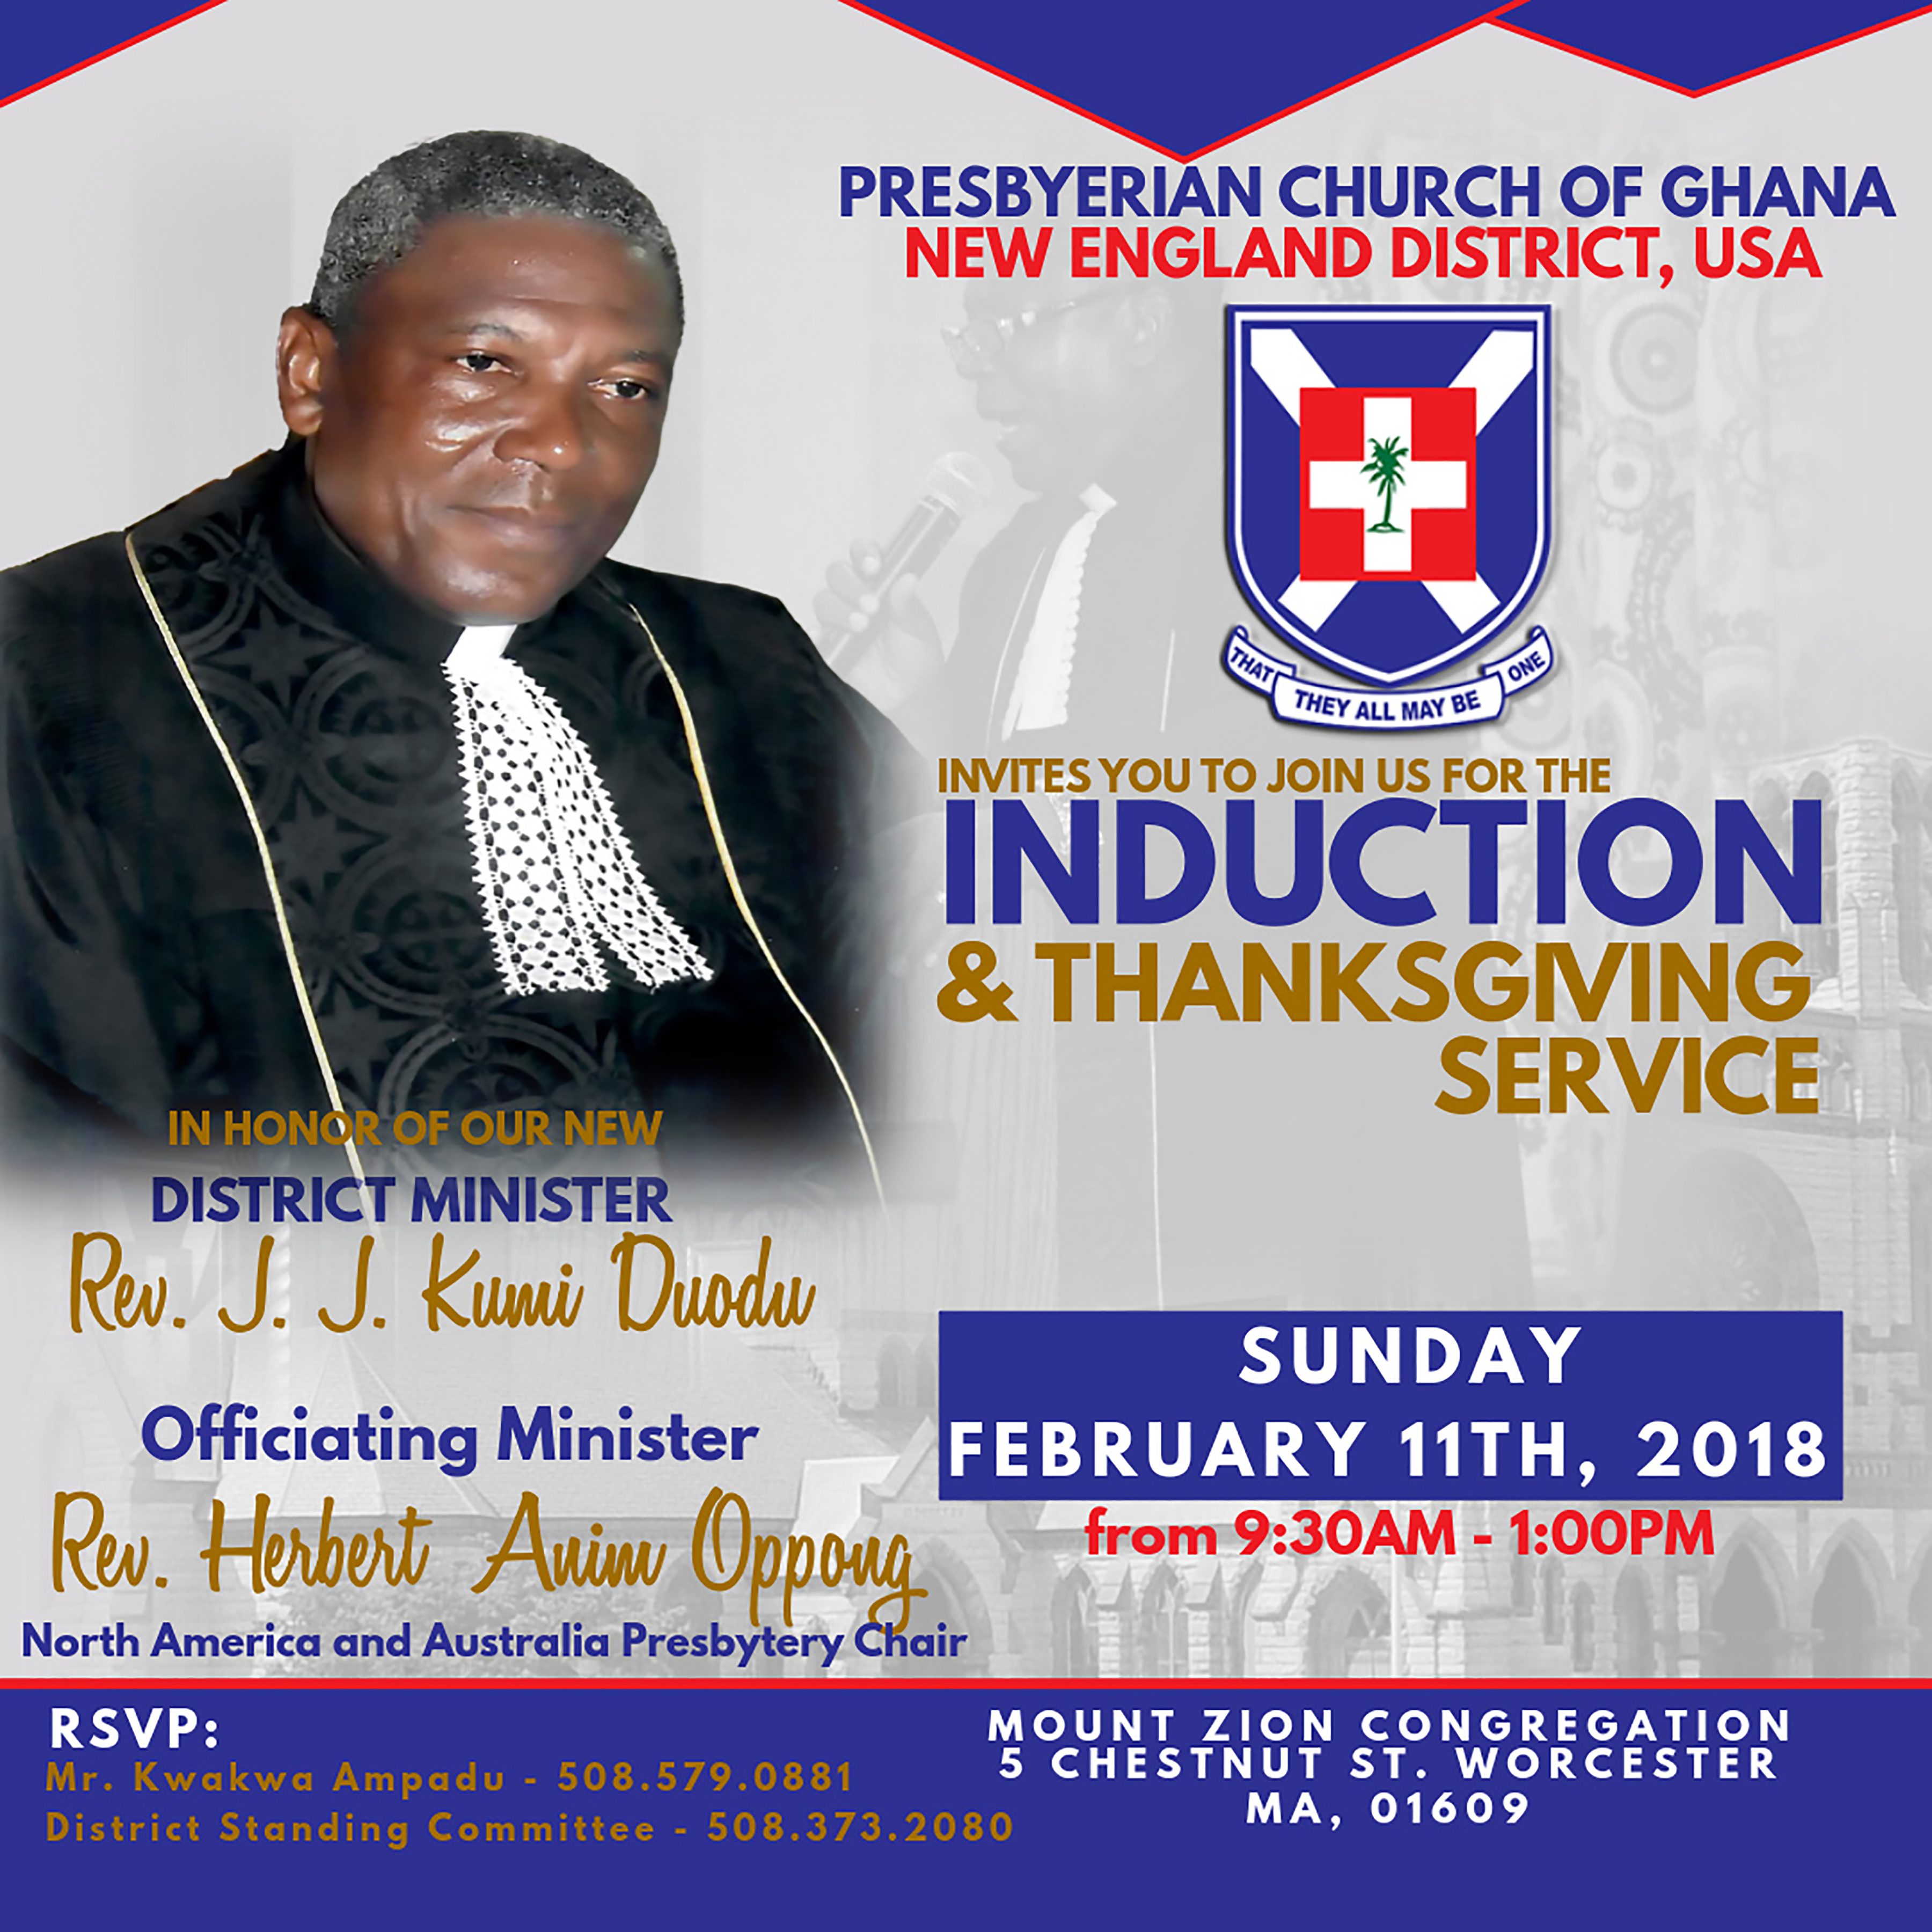 District Minister's Induction and Thanksgiving Service